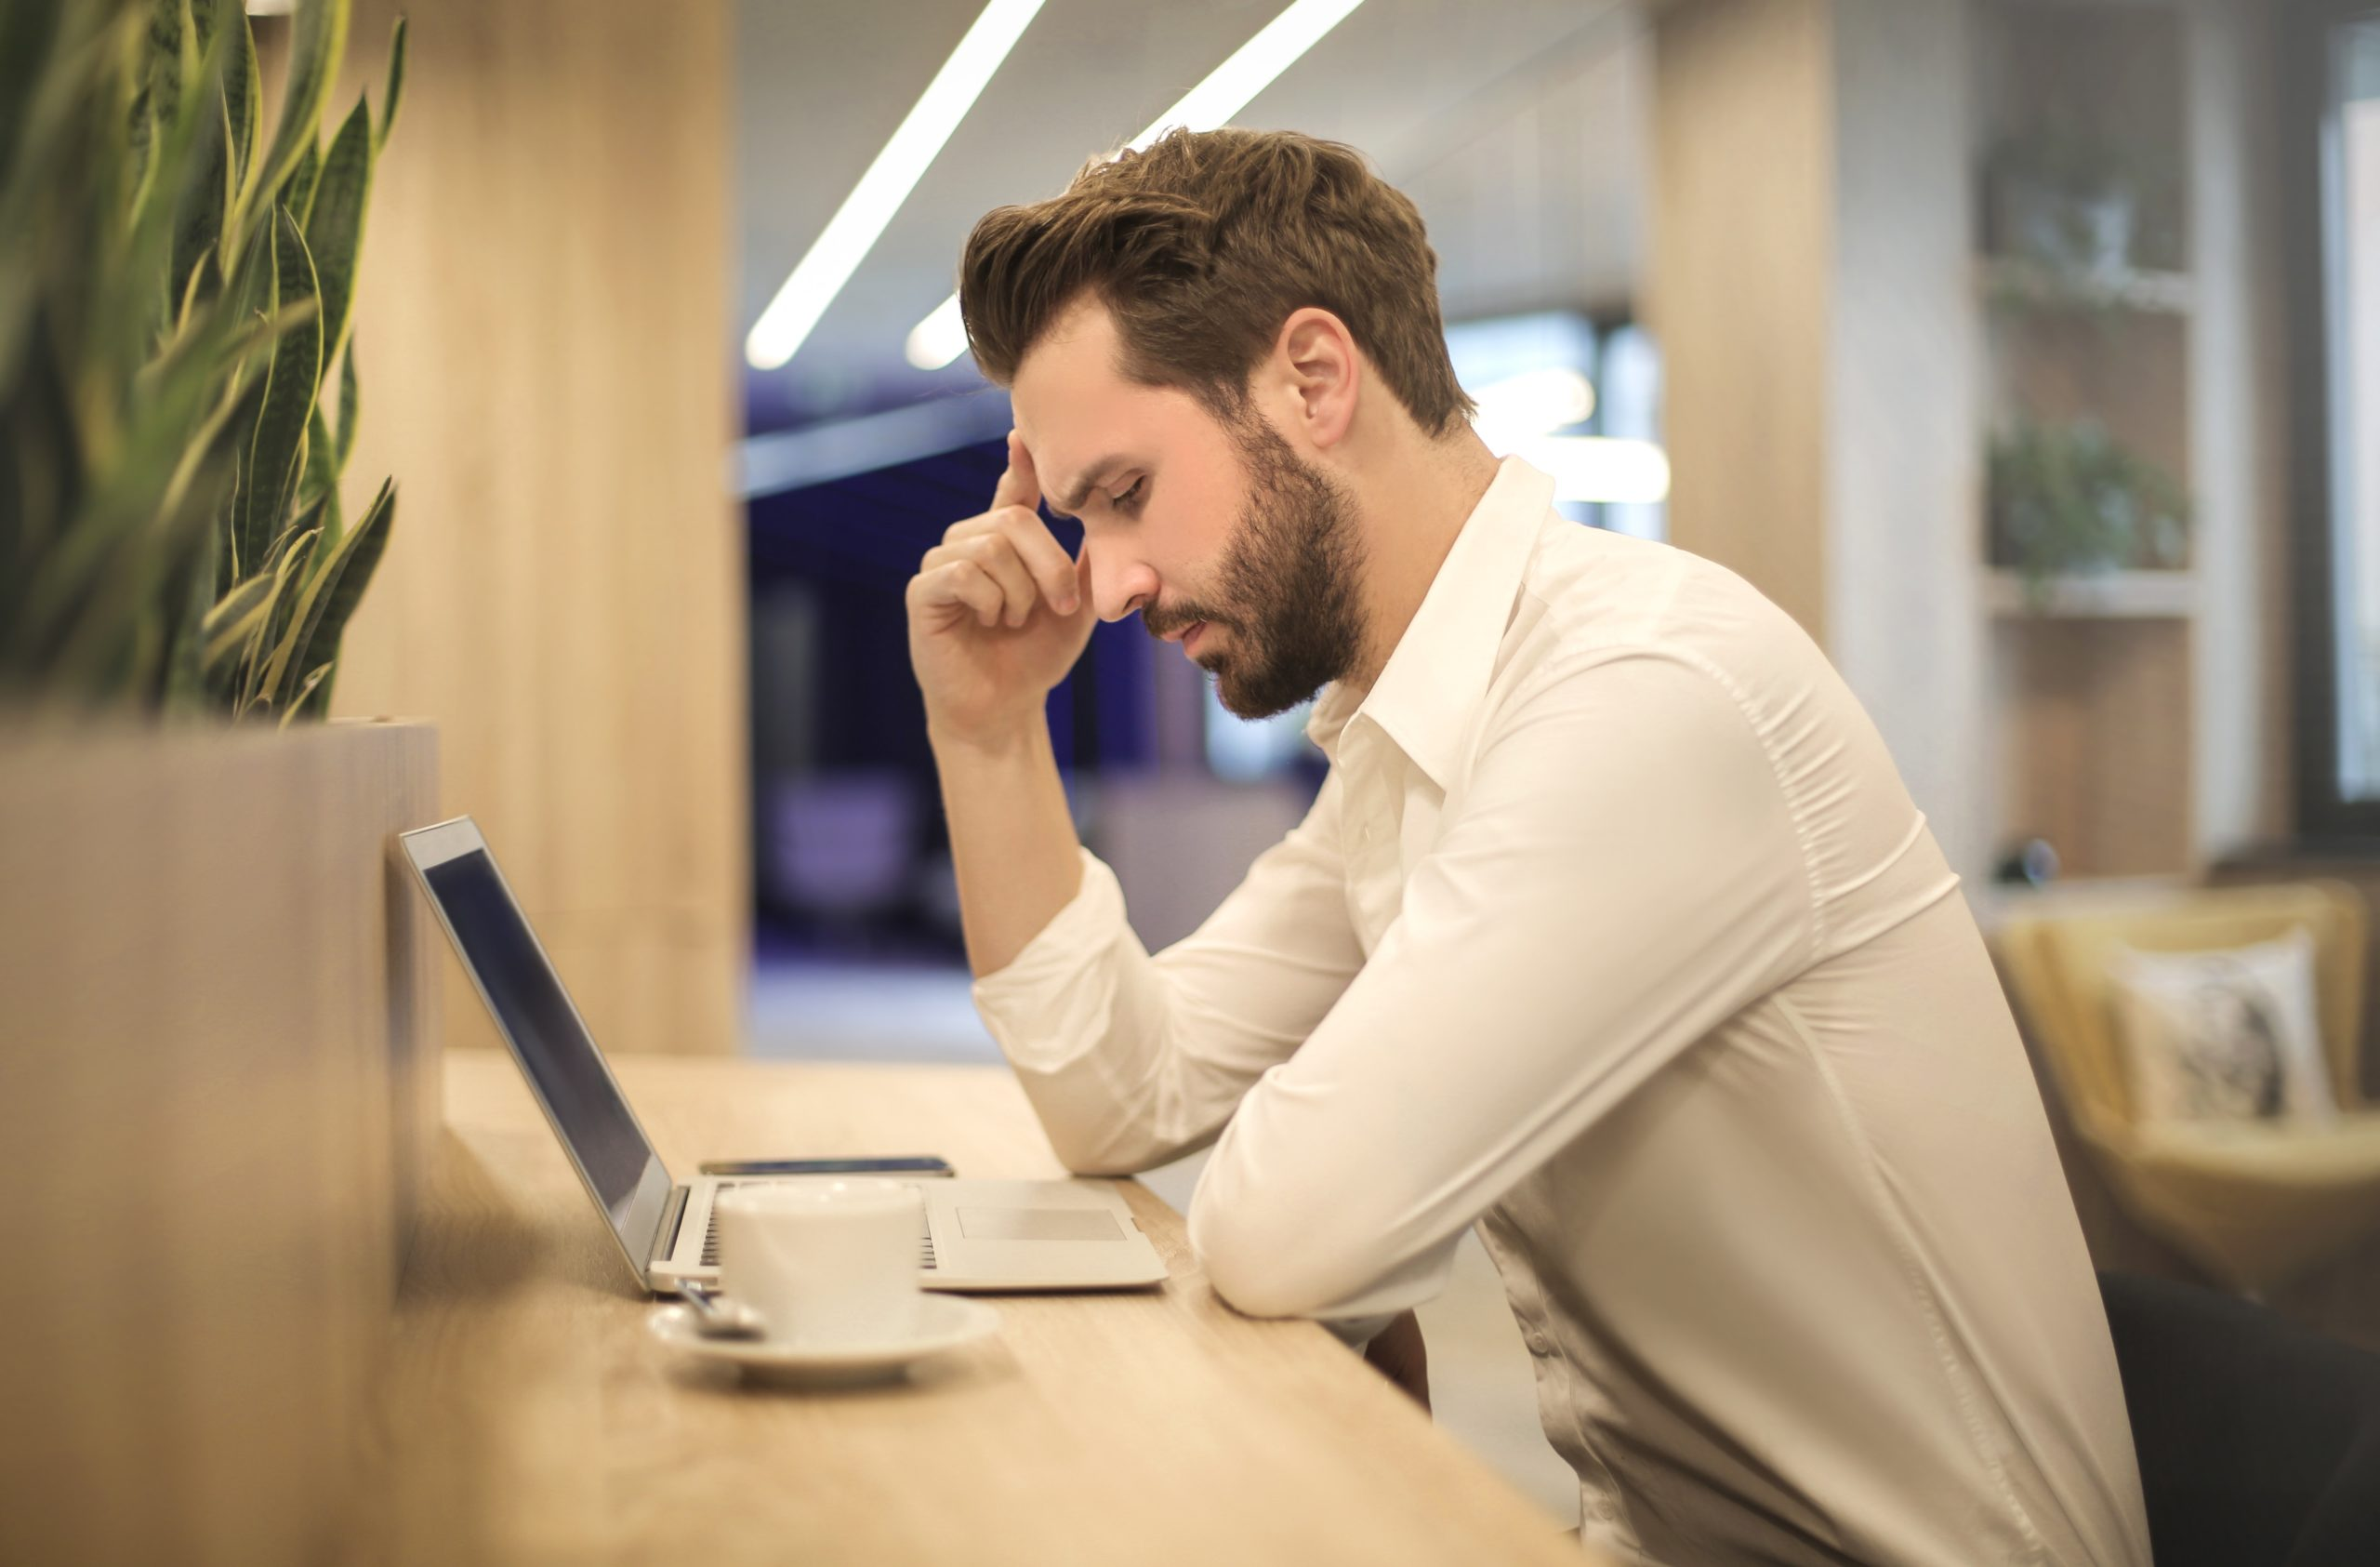 Work anxiety - what is it and how to manage it